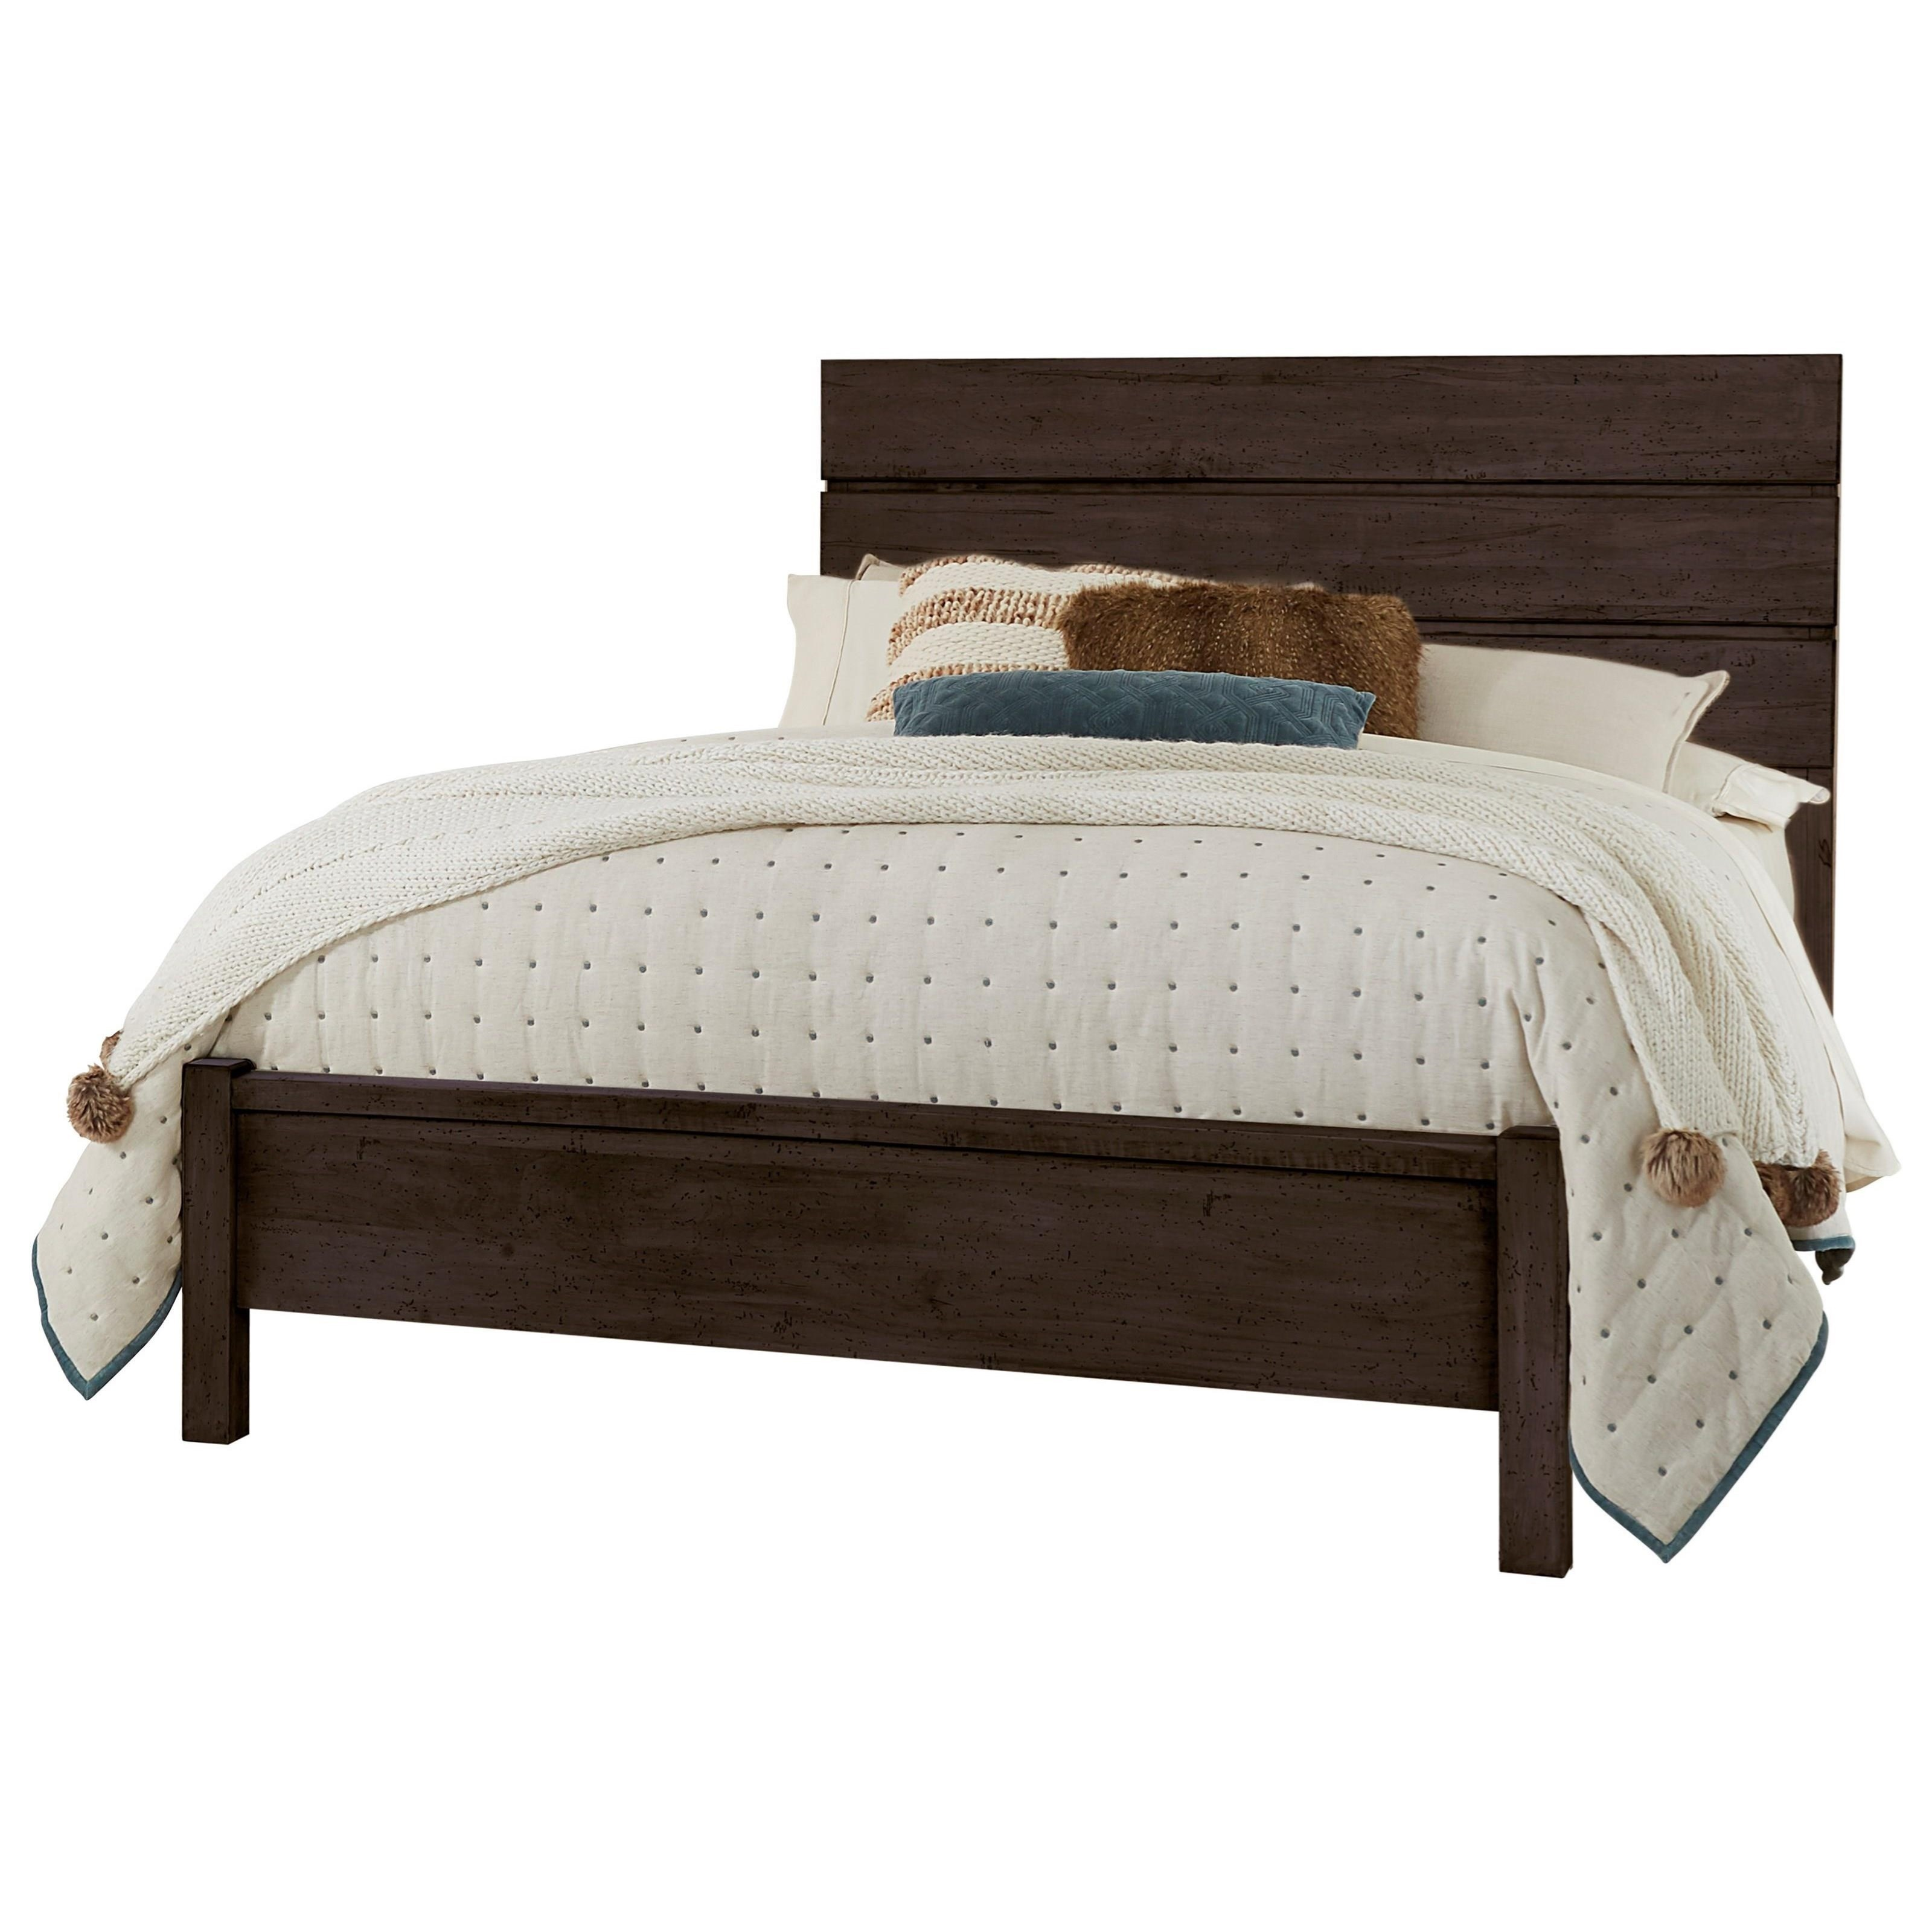 Touche King Platform Bed  by Centennial Solids at Jacksonville Furniture Mart